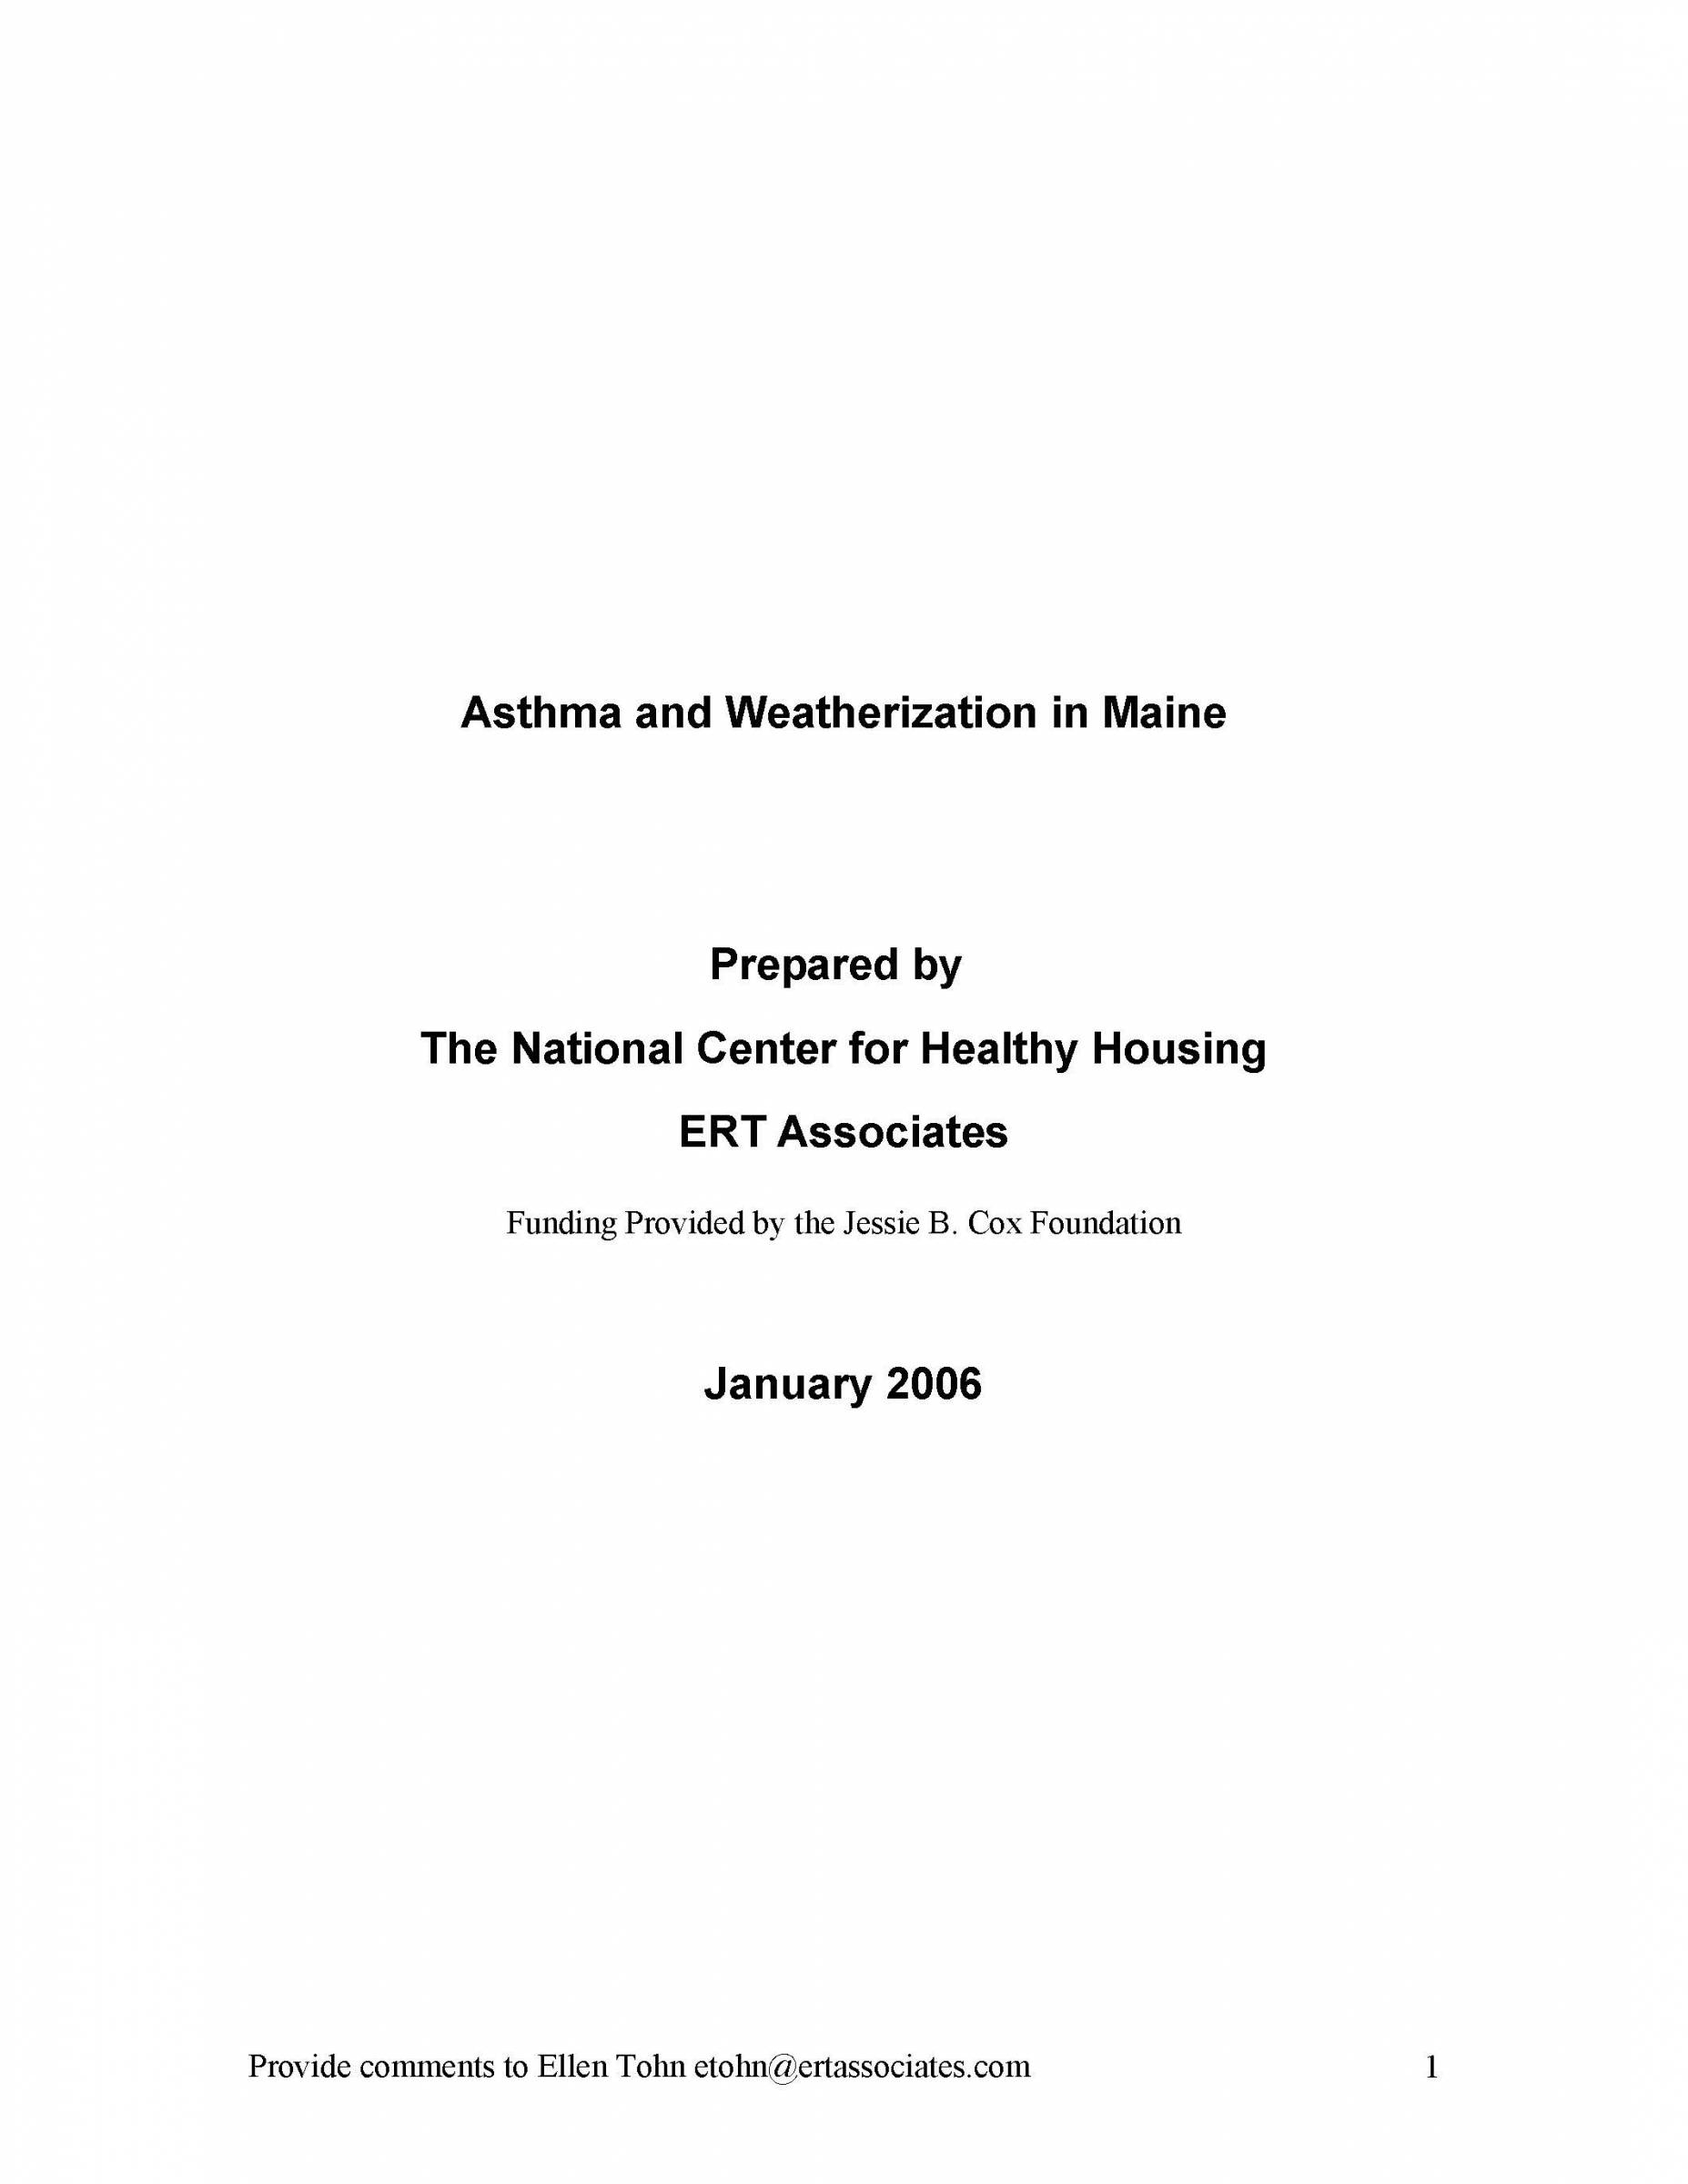 Asthma and Weatherization in Maine